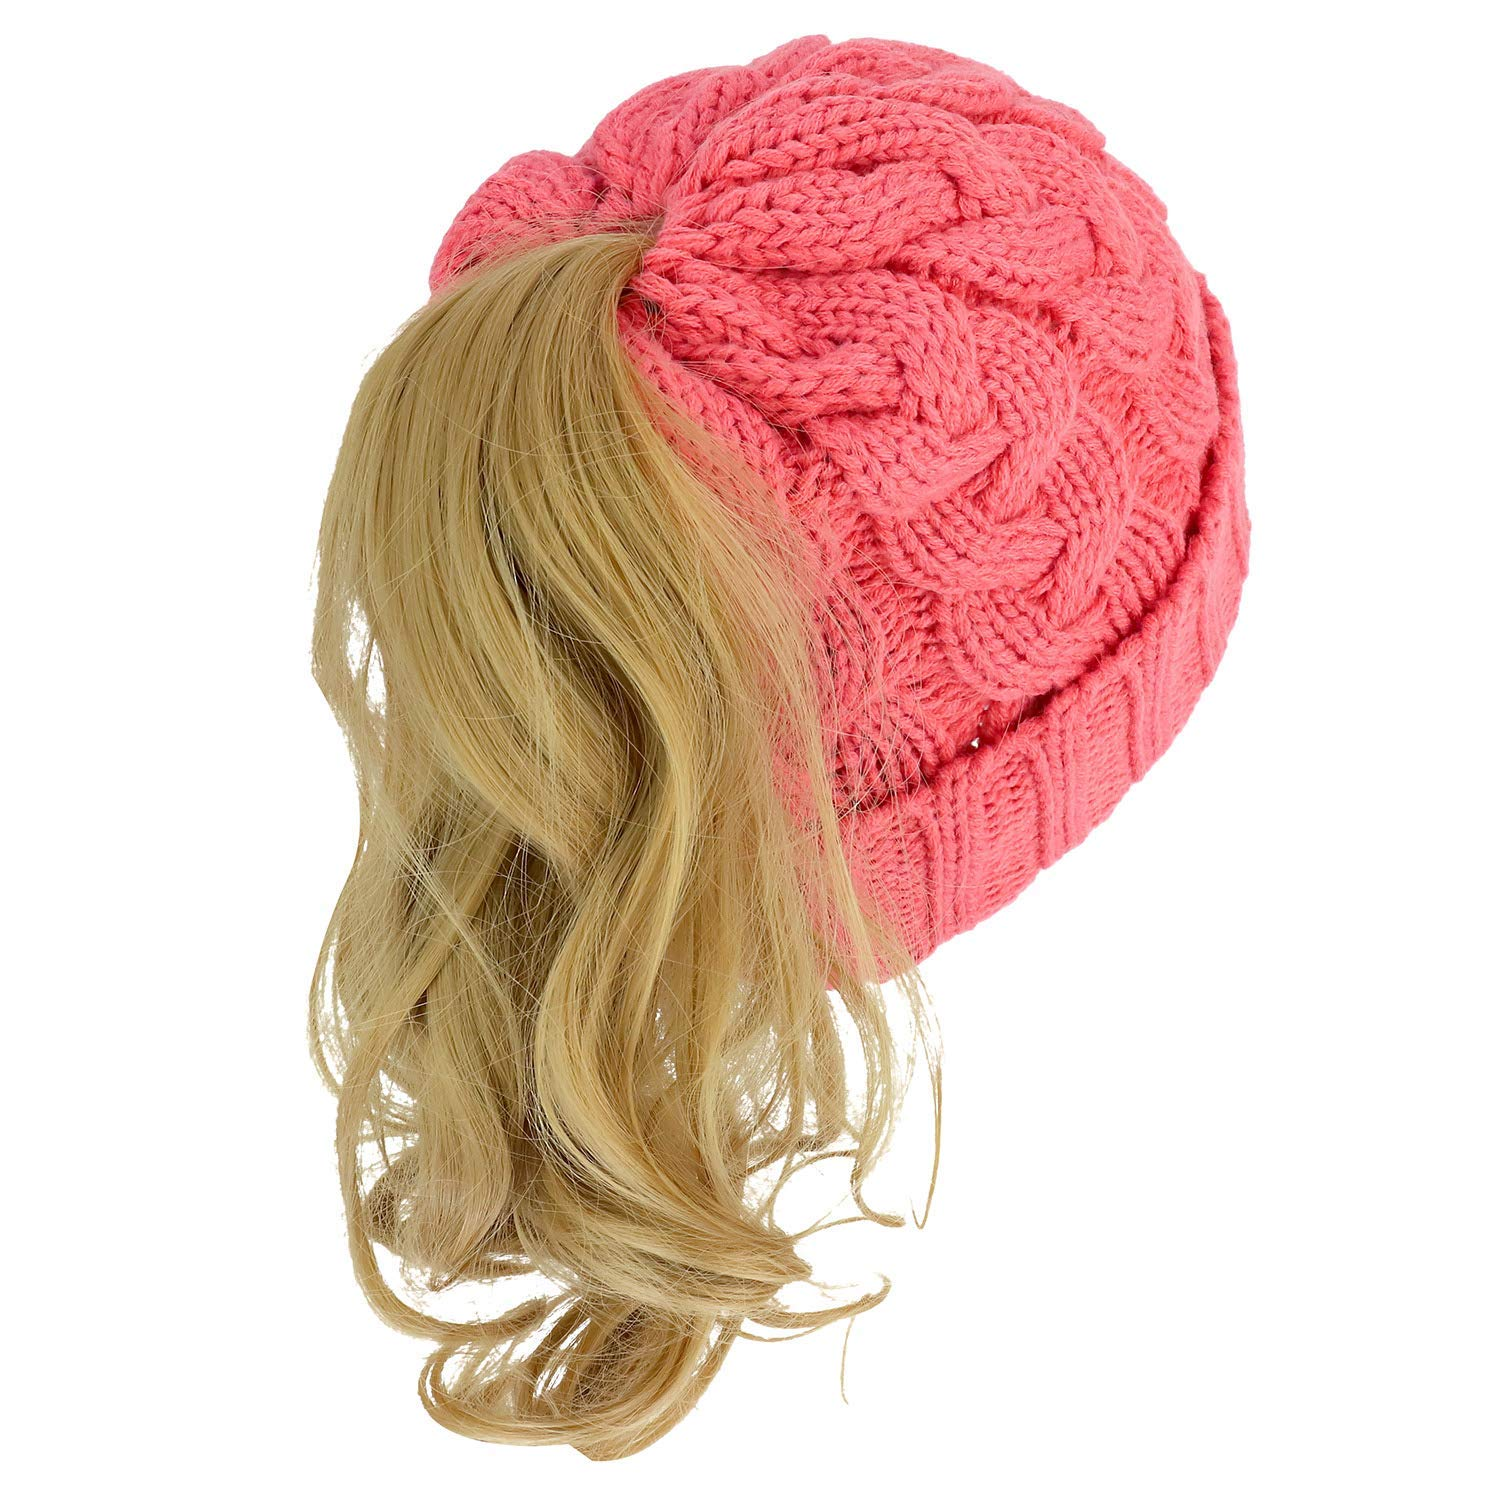 edd5b6ead75d2 Get Quotations · Armycrew Cable Knit Messy Bun Hair Winter Ponytail Beanie  Cap